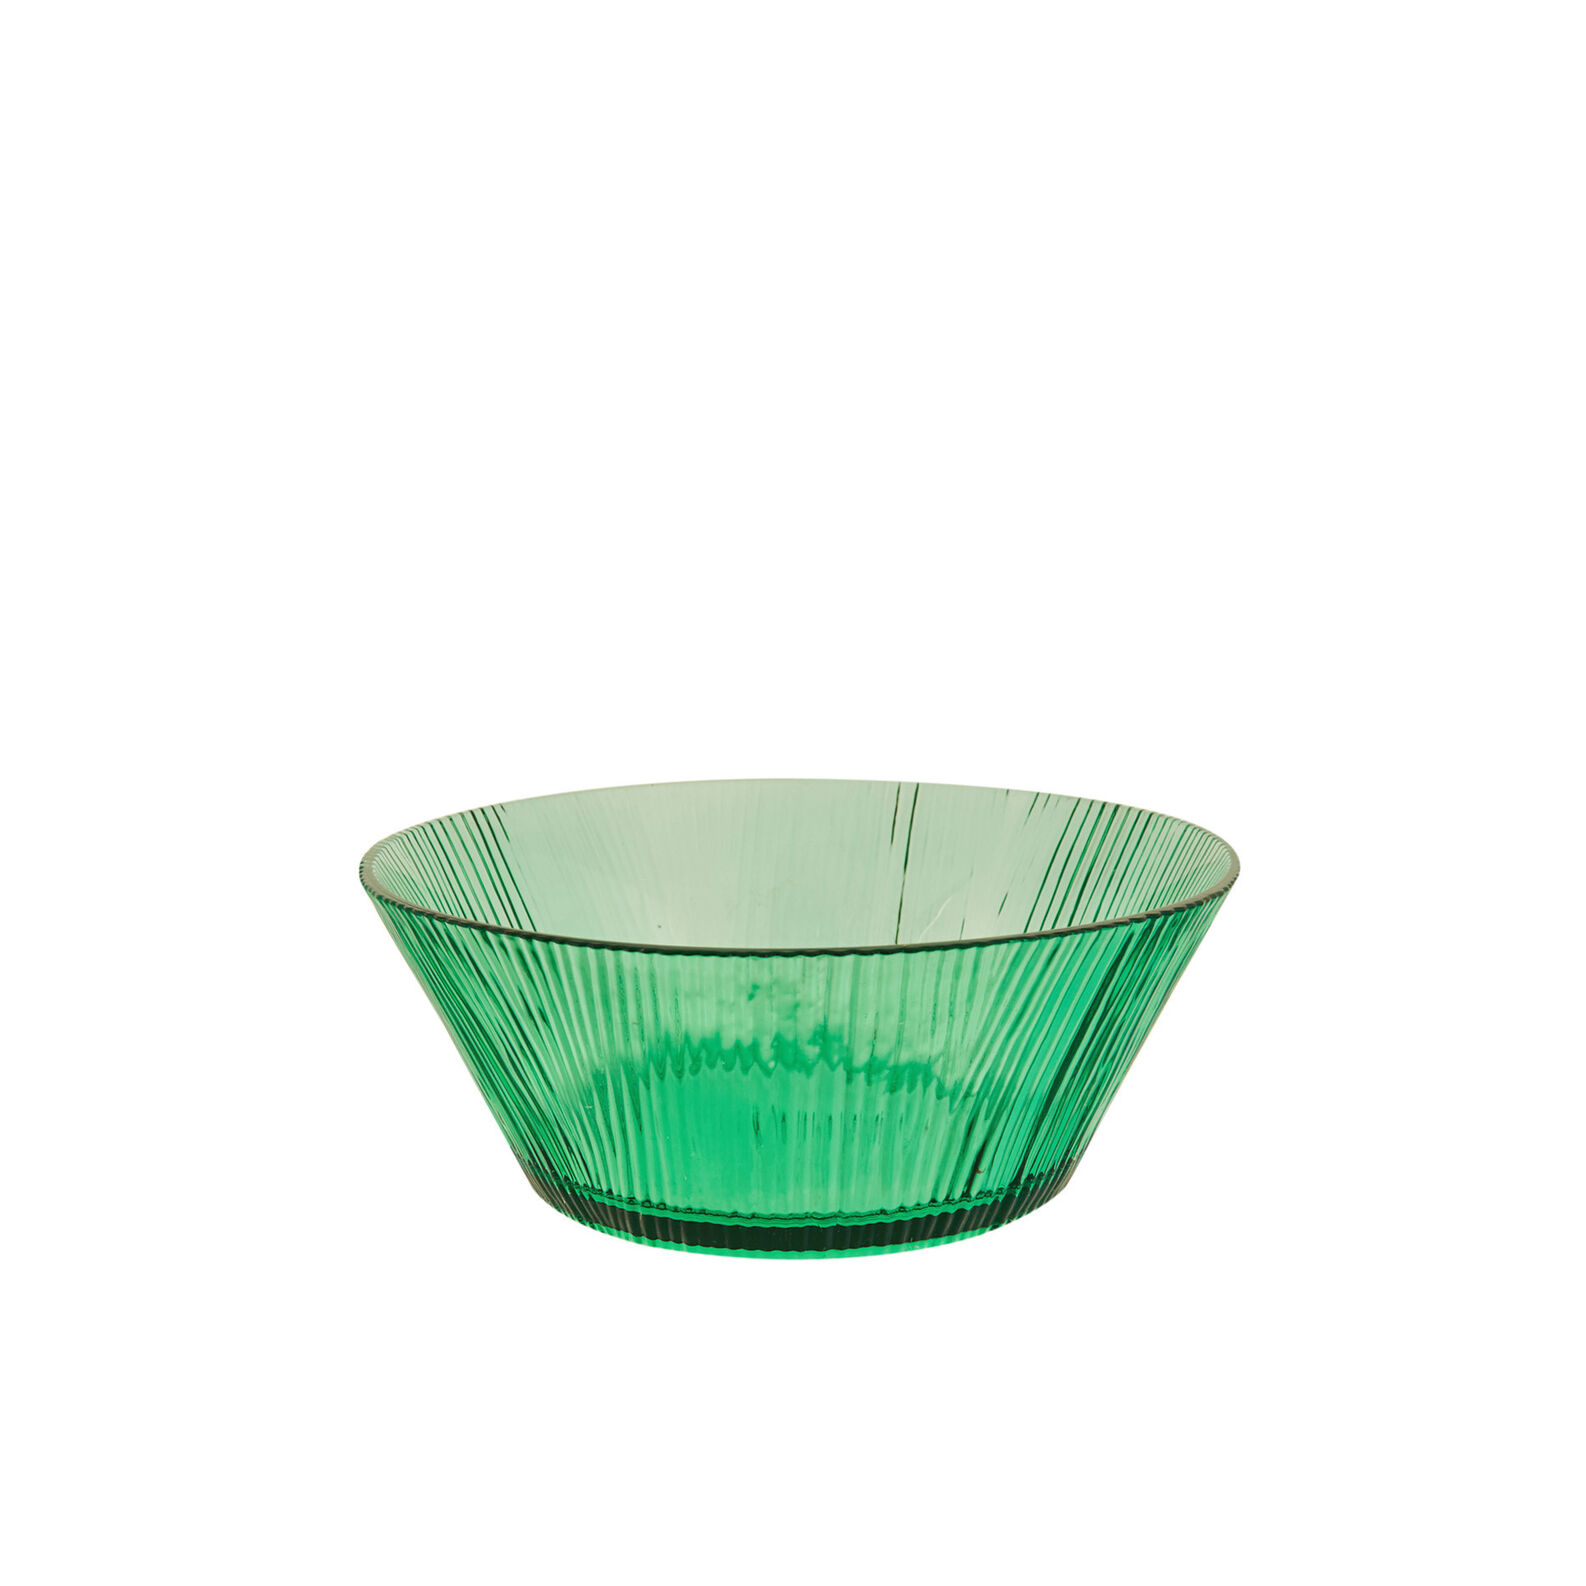 Small plastic bowl